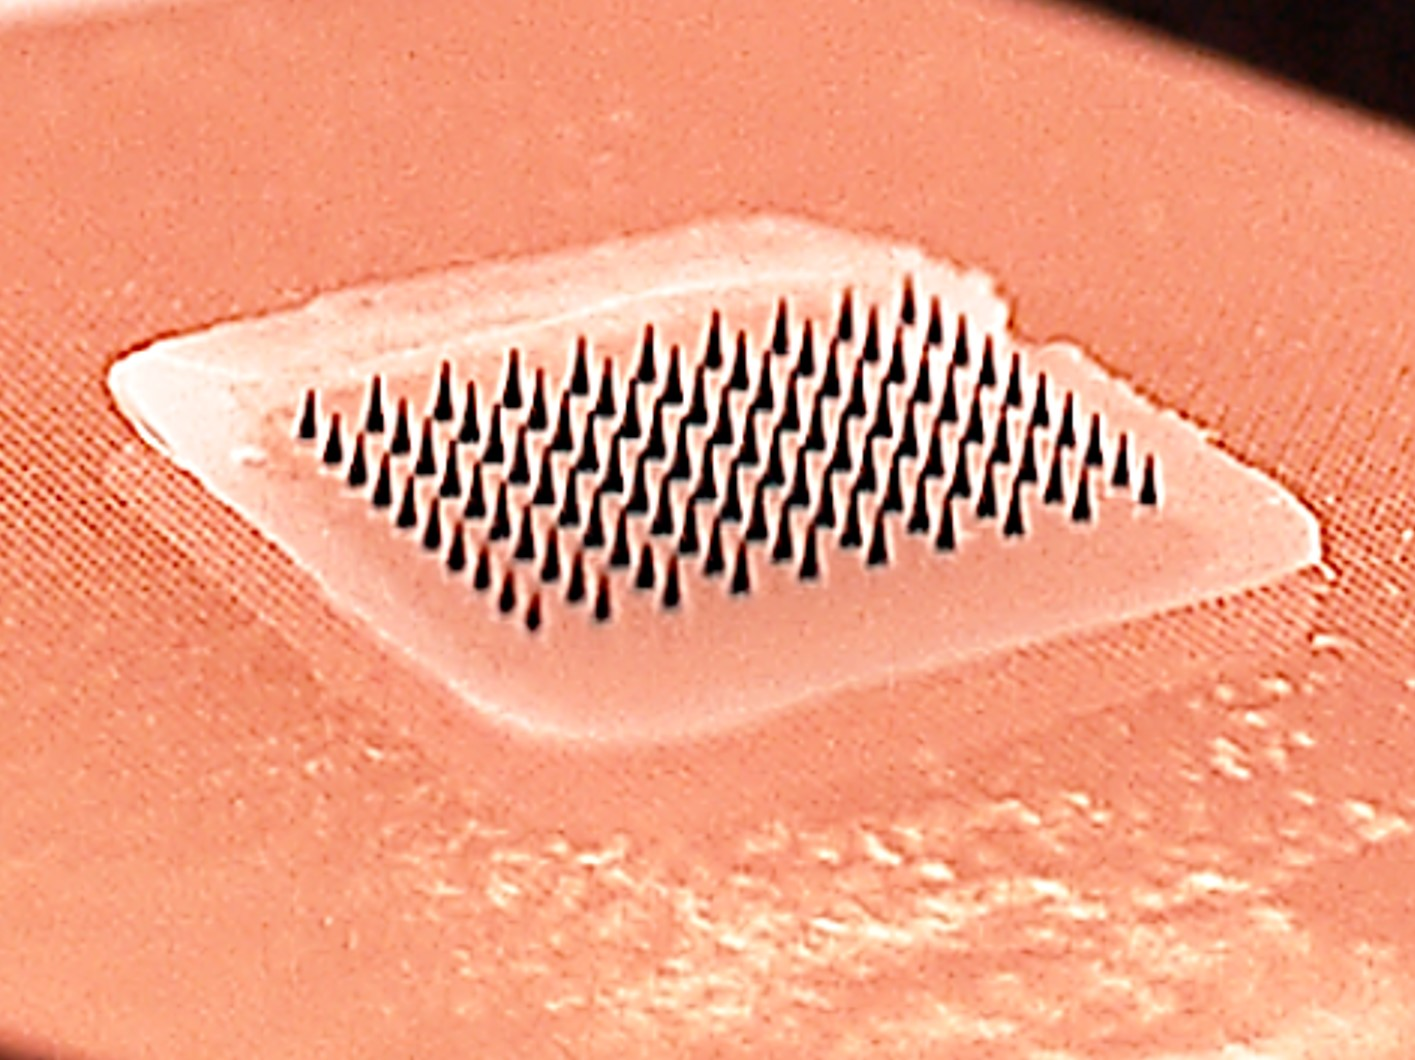 Human Trial Shows Feasibility of Dissolvable Microneedle Patch for Flu Vaccination